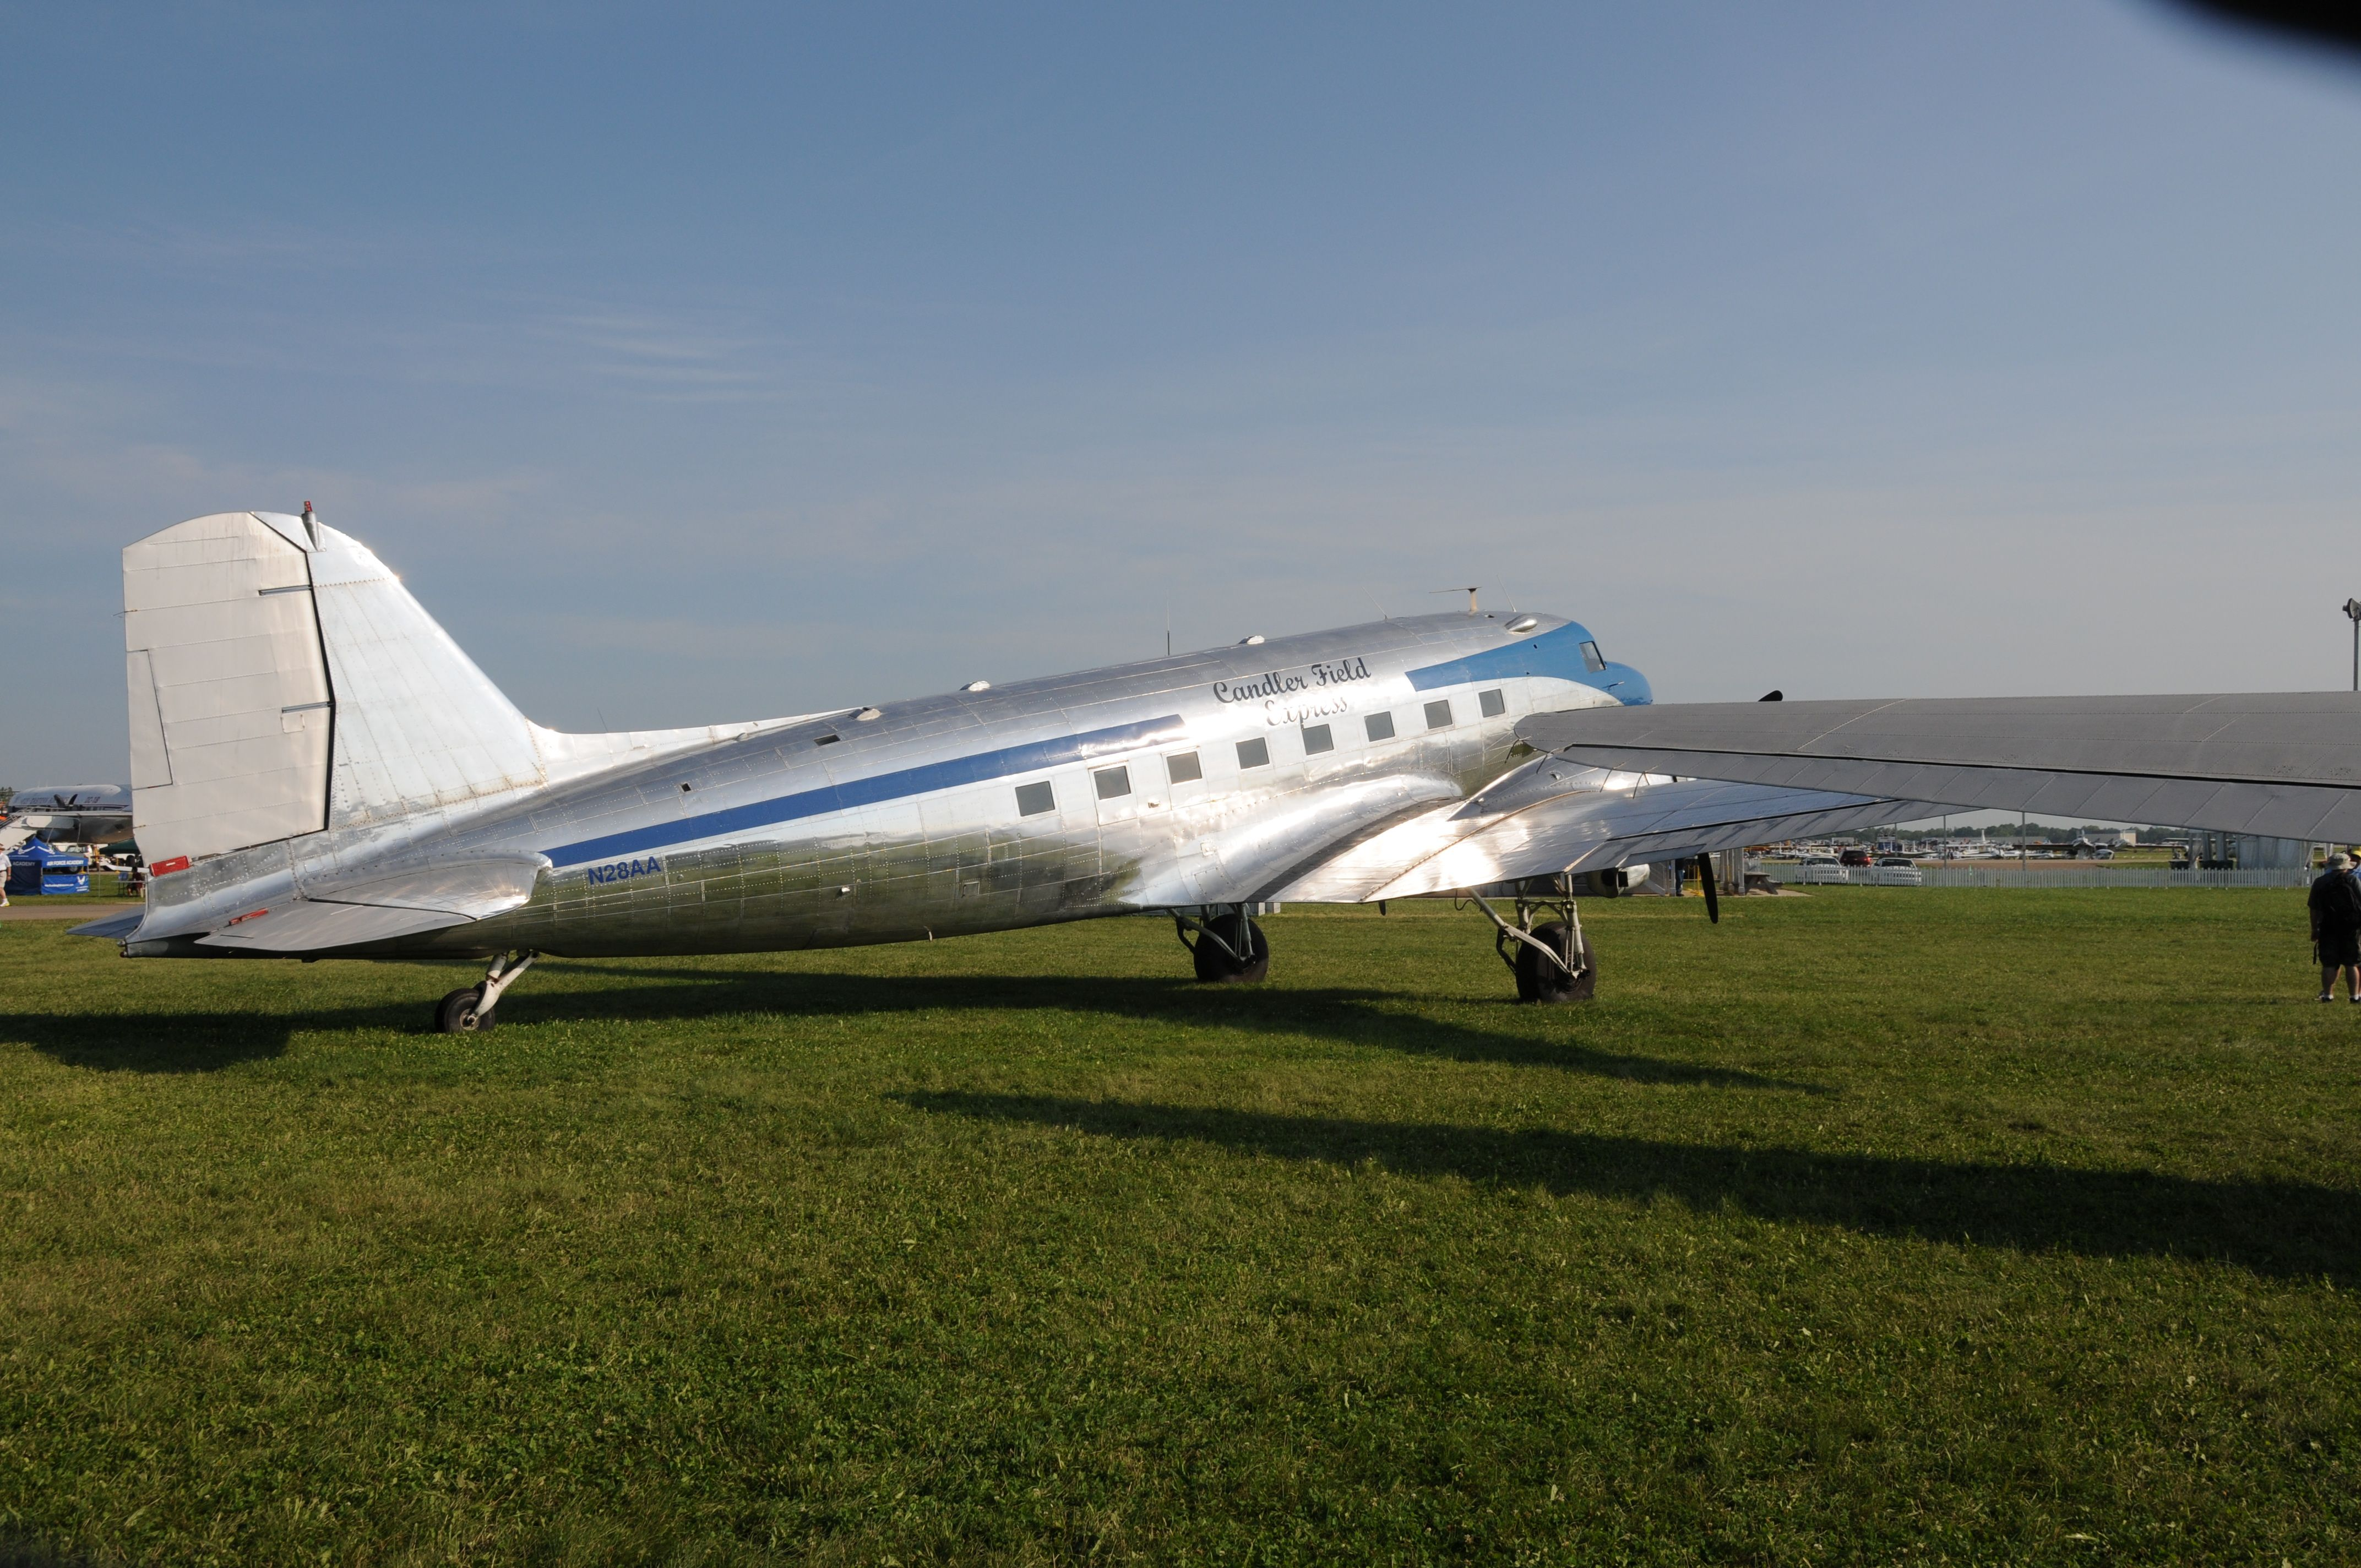 DC-3, 75th anniversary fly-in, 2010.